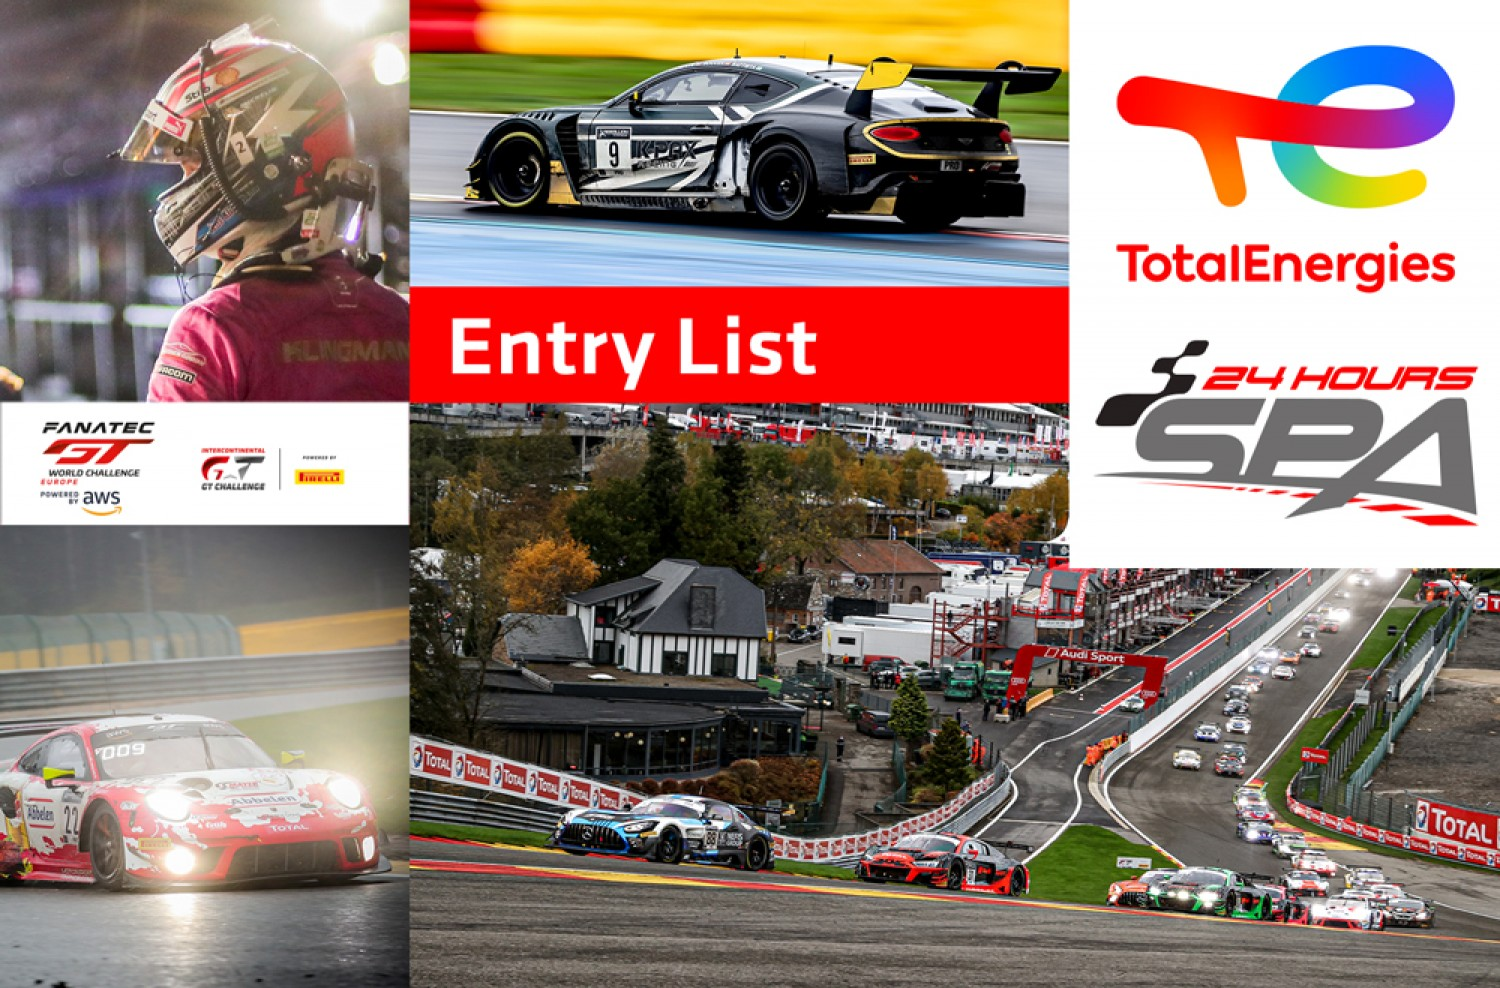 TotalEnergies 24 Hours of Spa reveals high-calibre 60-car entry list for 2021 edition